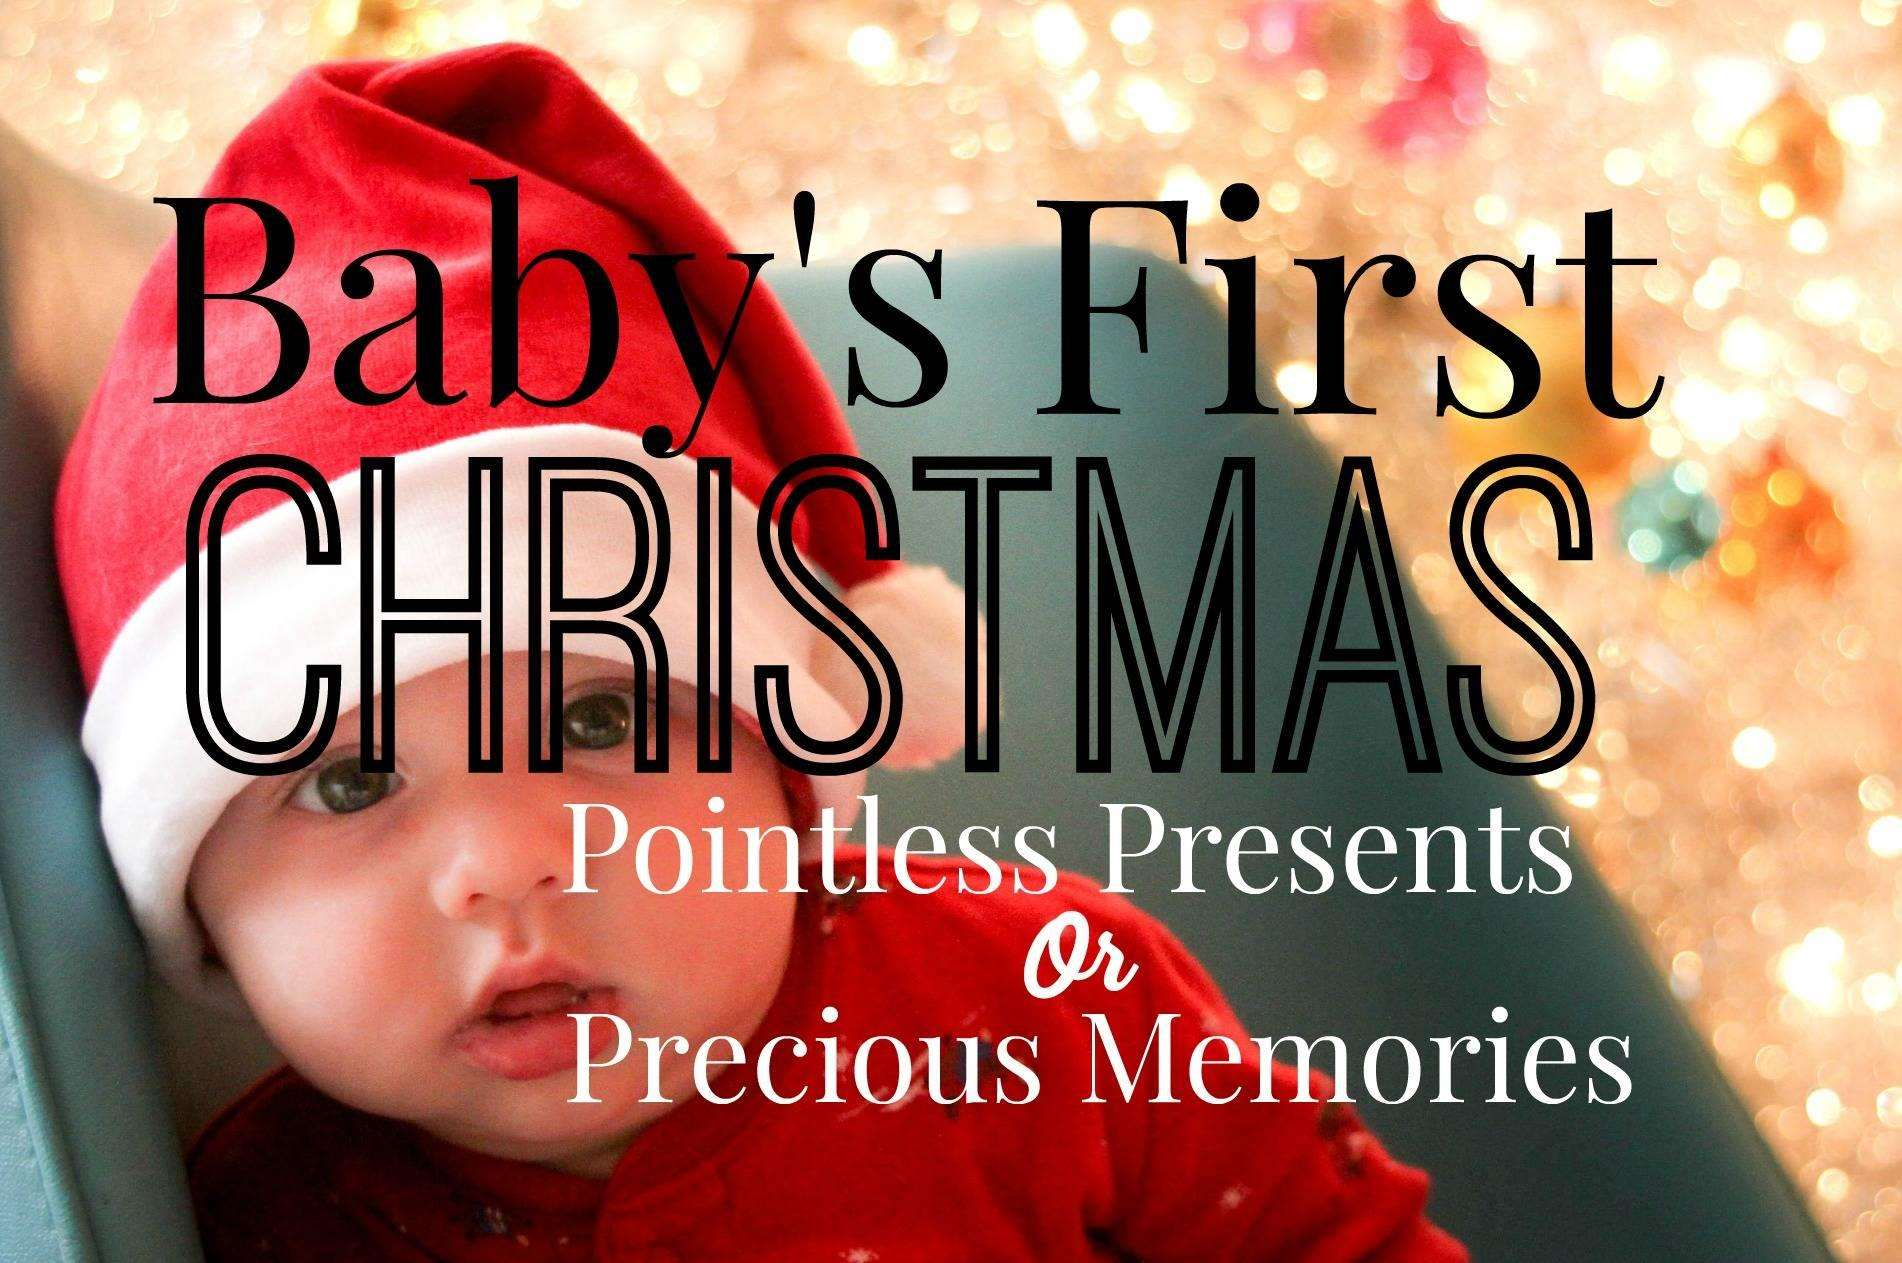 Your Baby's First Christmas: Pointless Presents or Precious Memories?, Babys first Christmas featrured%, uncategorised%